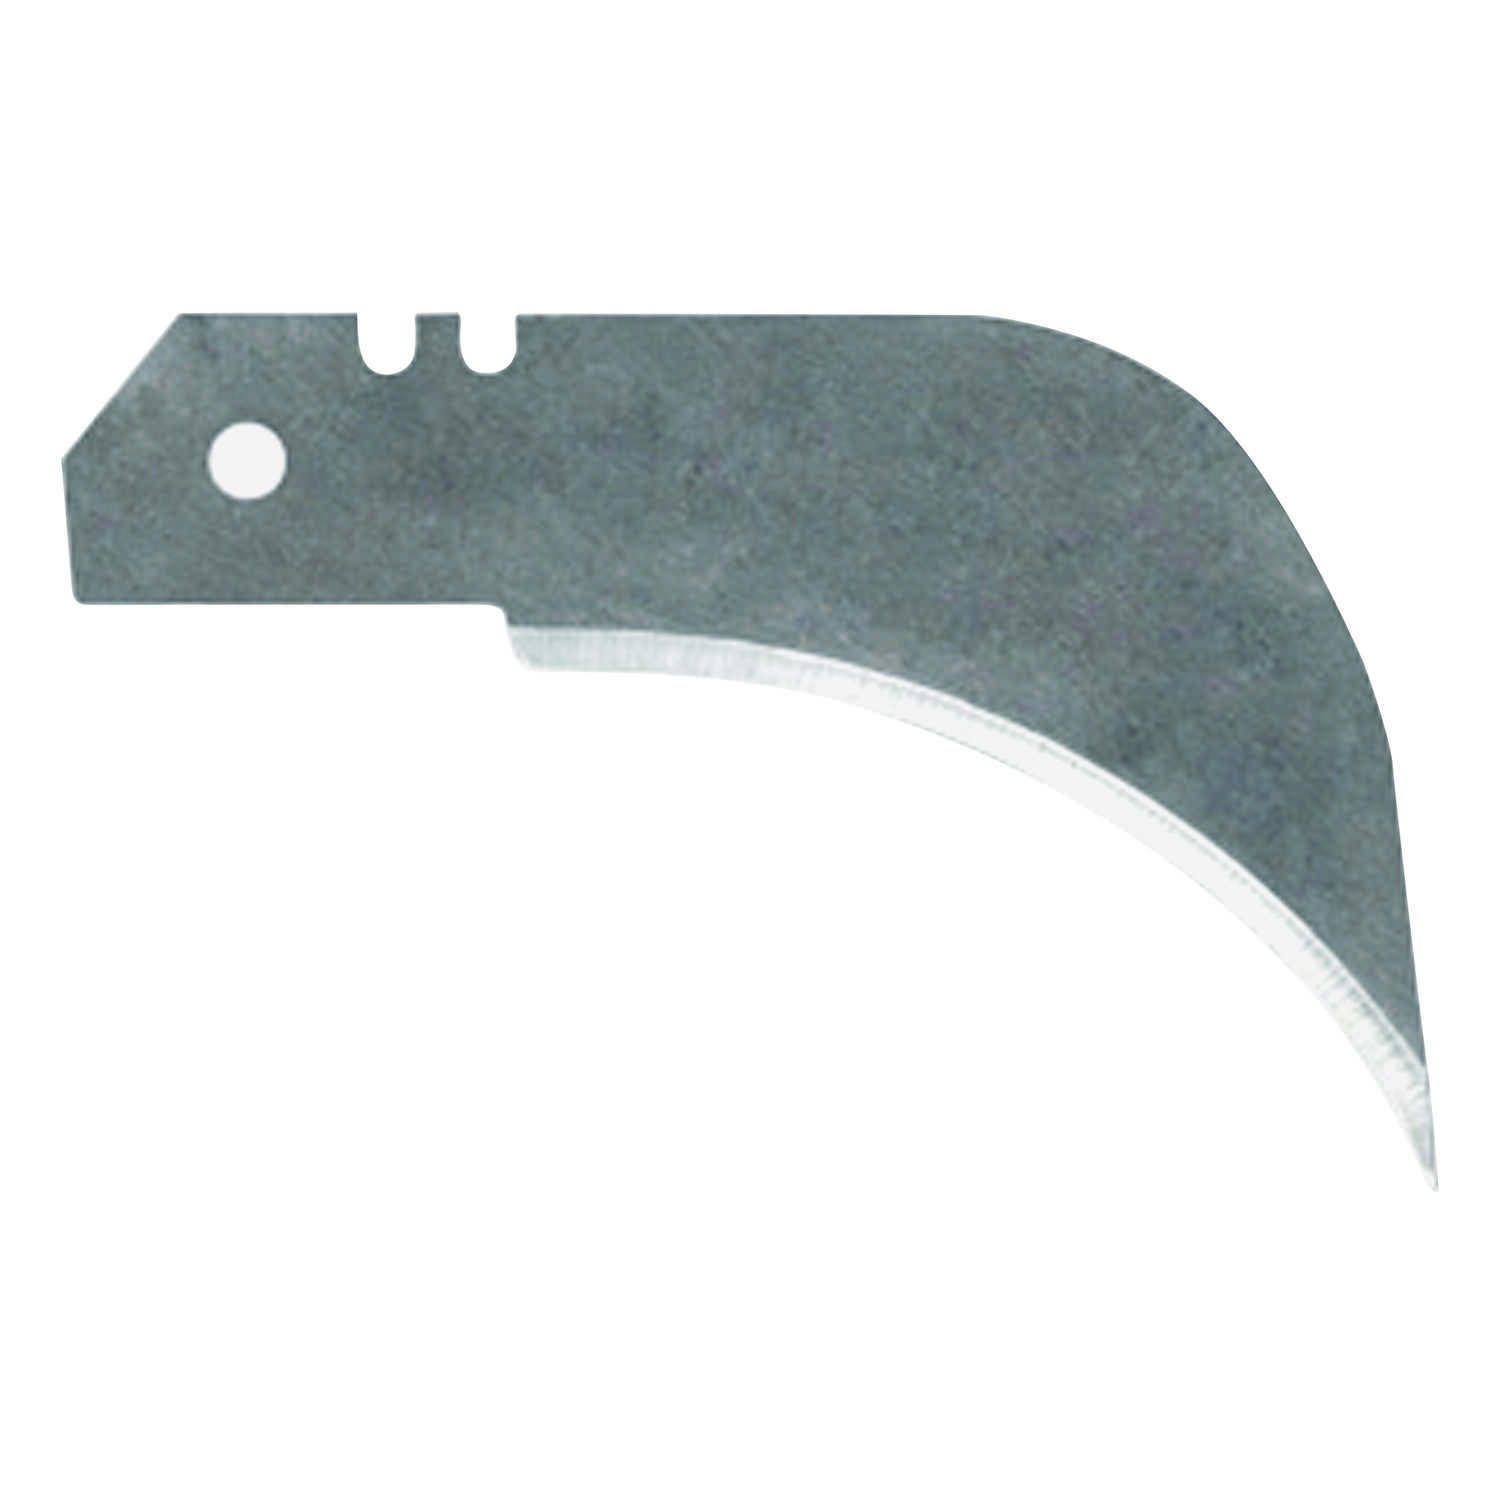 Ace  Linoleum  2.24 in. L x 0.024 in.  Carbon Steel  Hook  Replacement Blade  1 pk